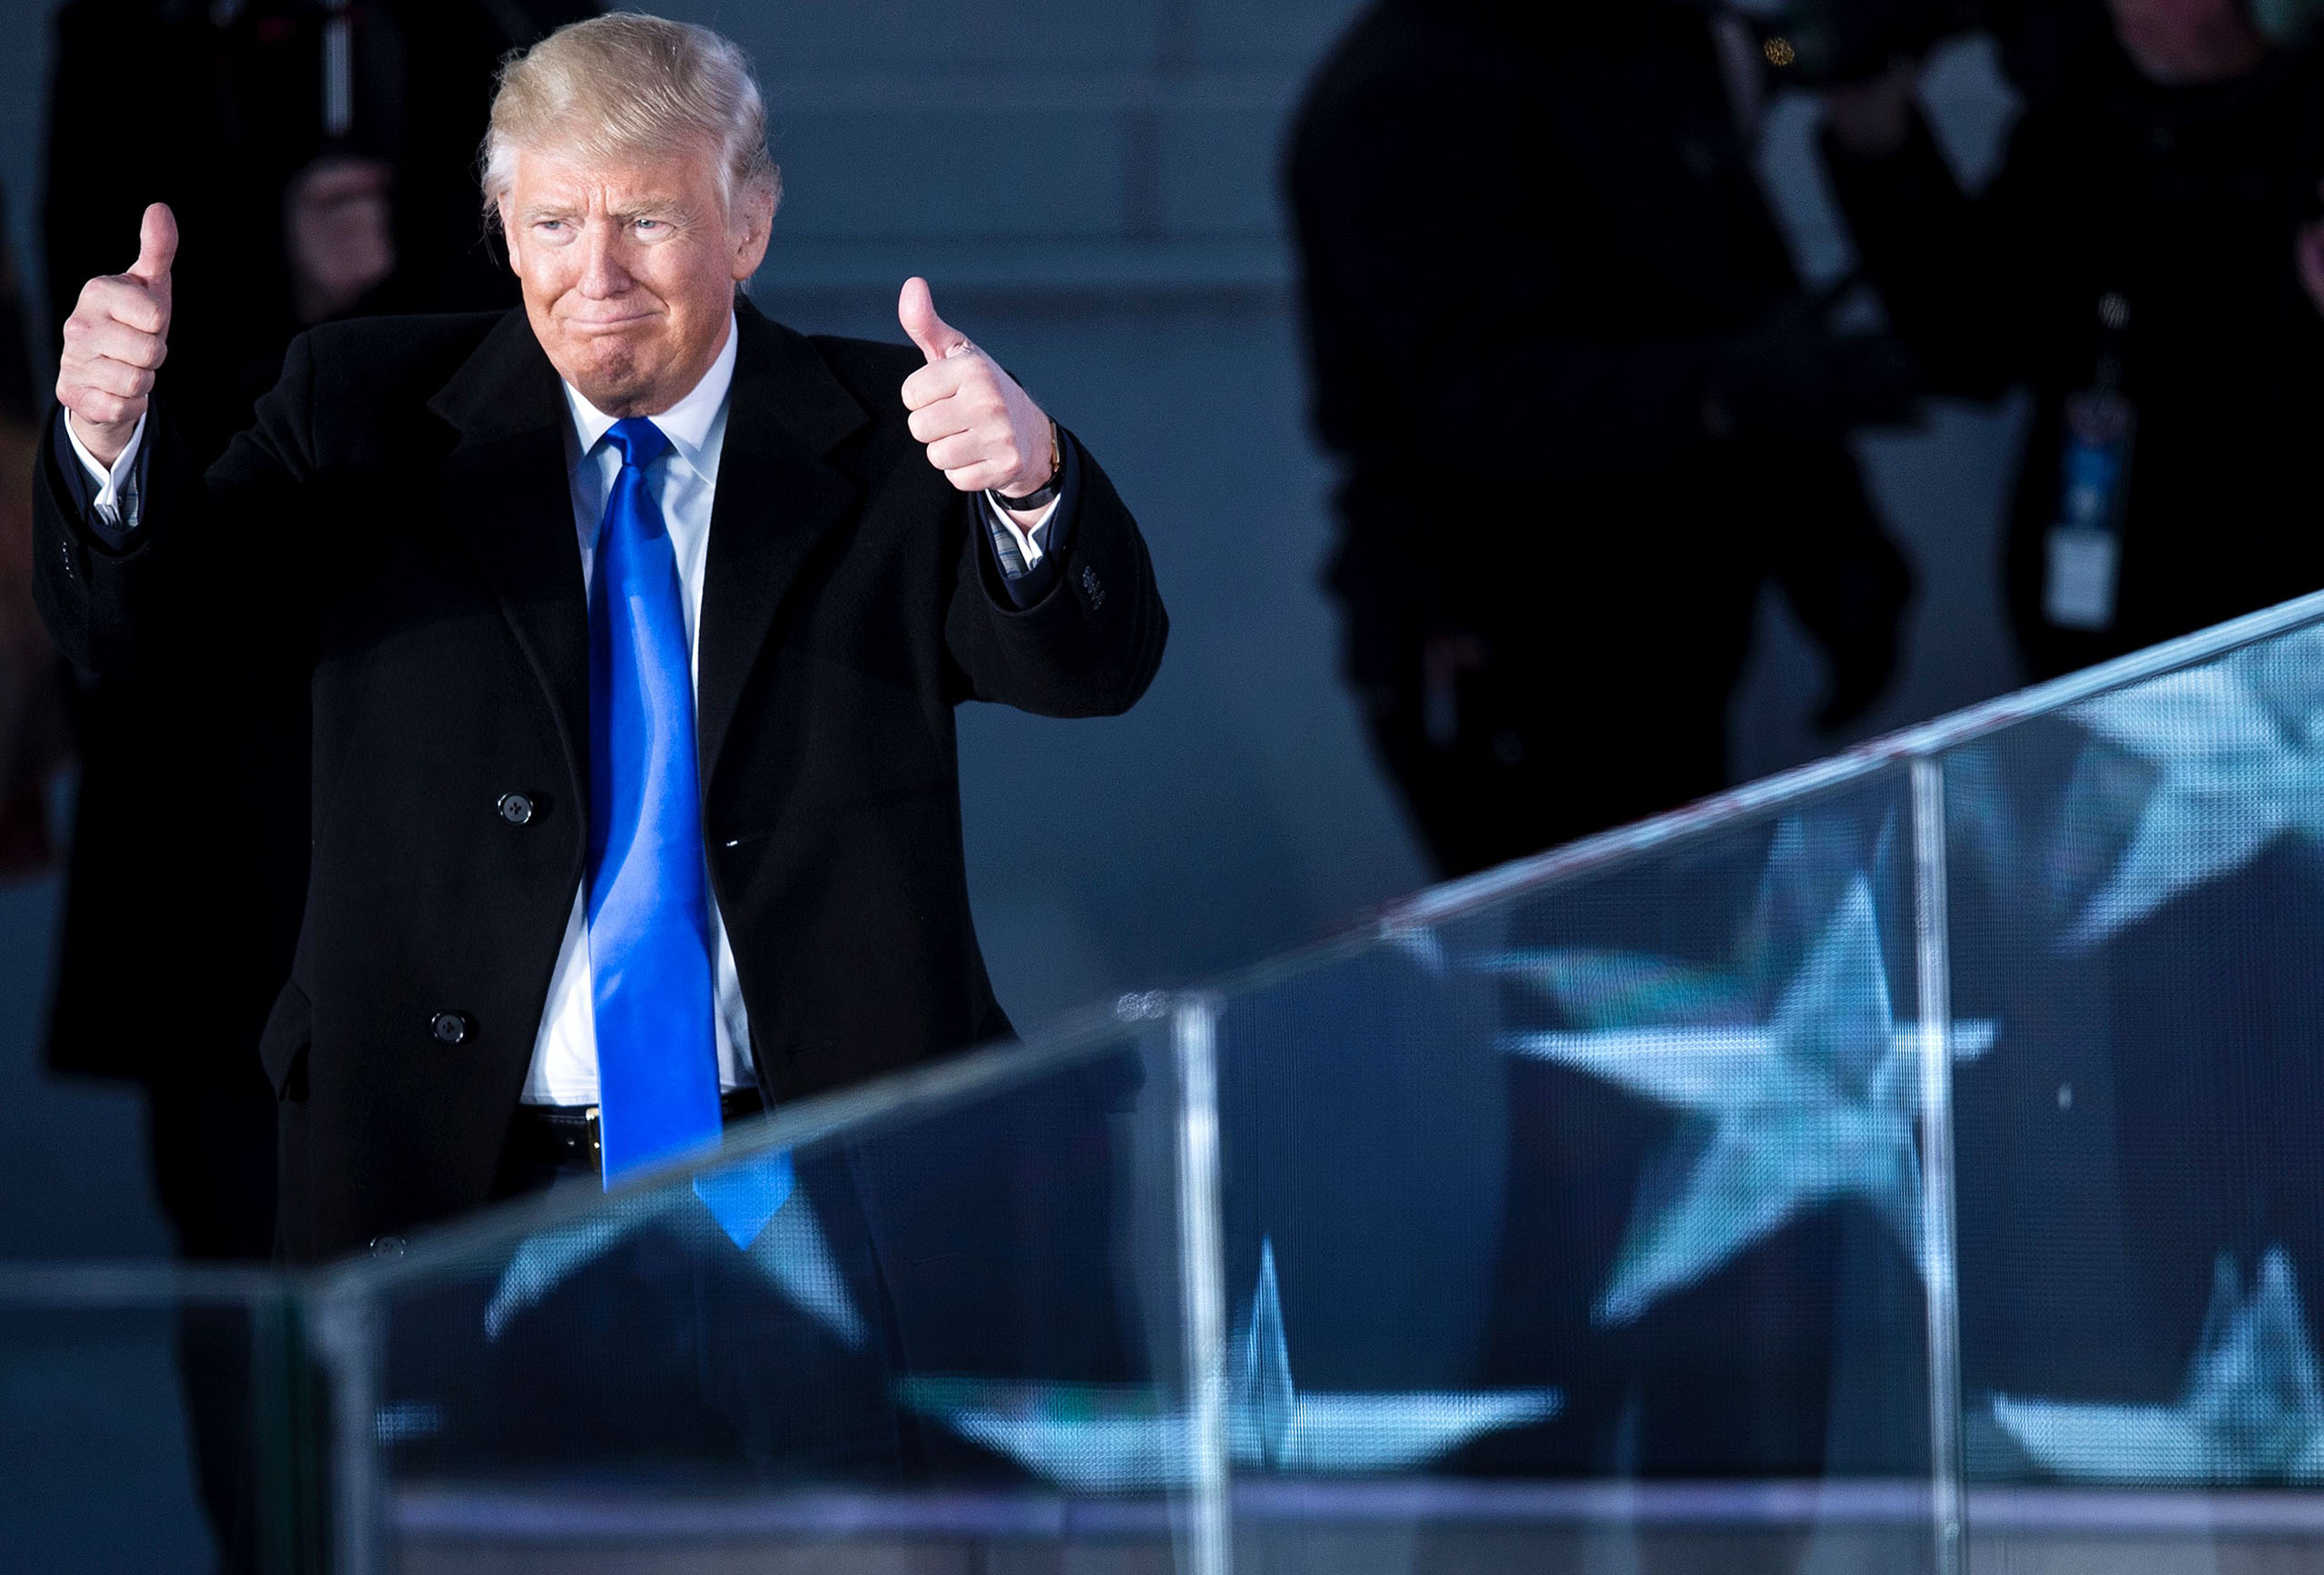 President-elect Donald Trump gestures during a welcome celebration at the Lincoln Memorial in Washington, DC, on Jan. 19, 2017.